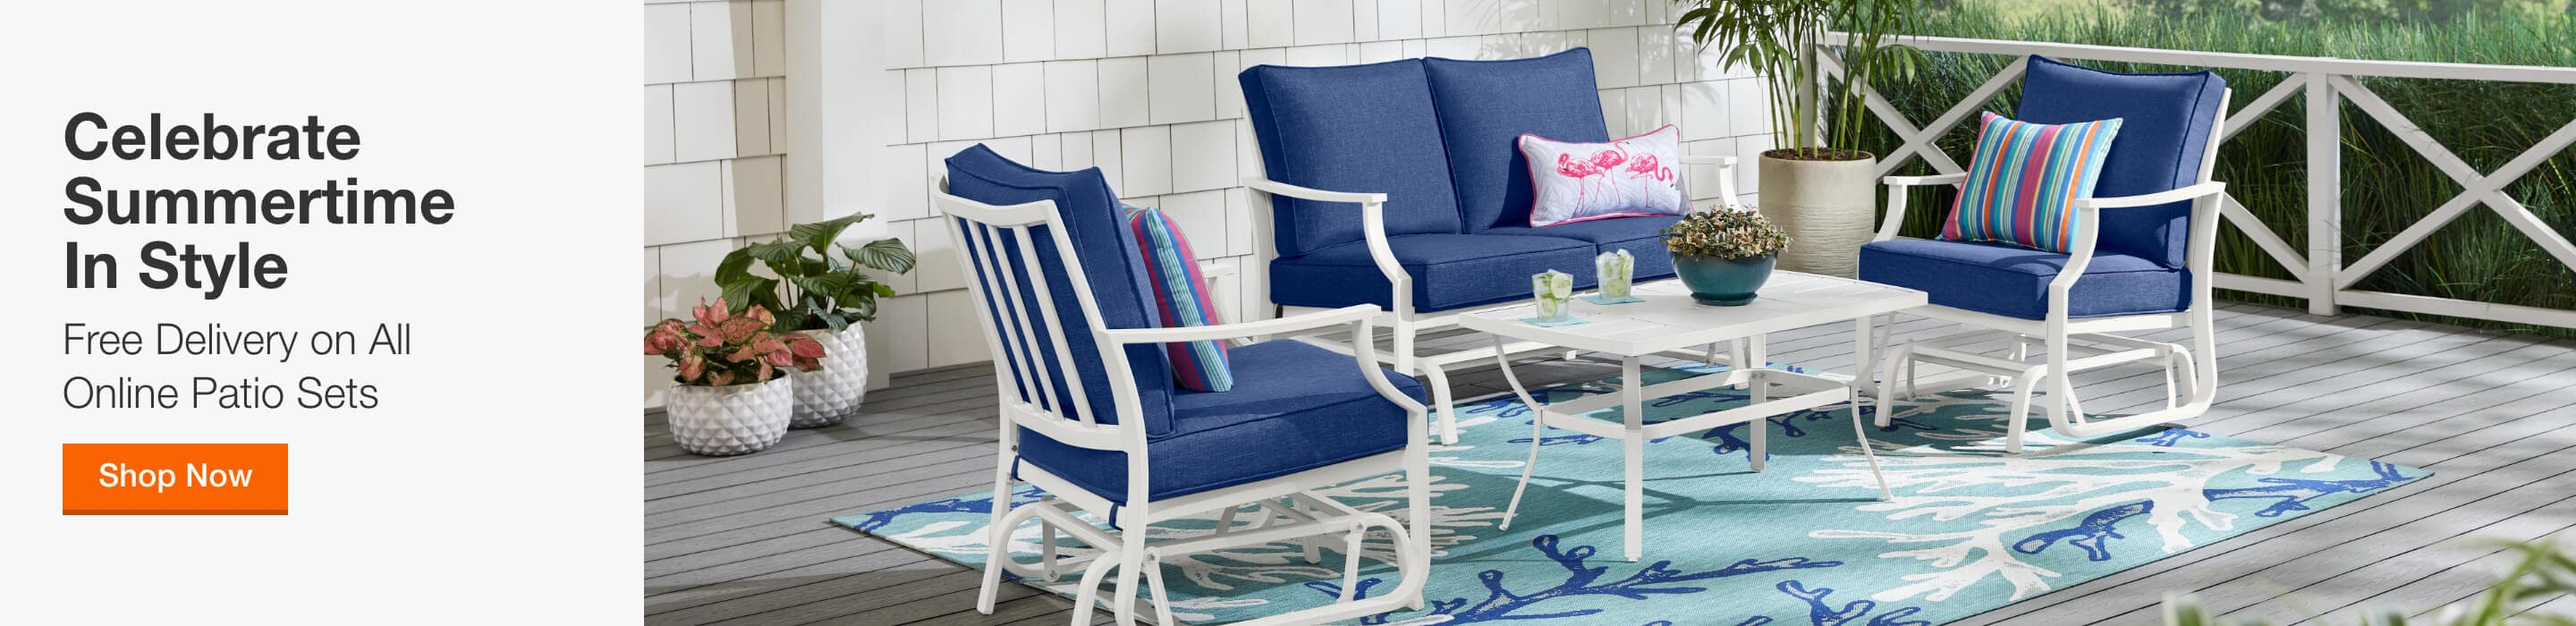 Celebrate Summertime in Style - Free Delivery on All Online Patio Sets. Shop Now